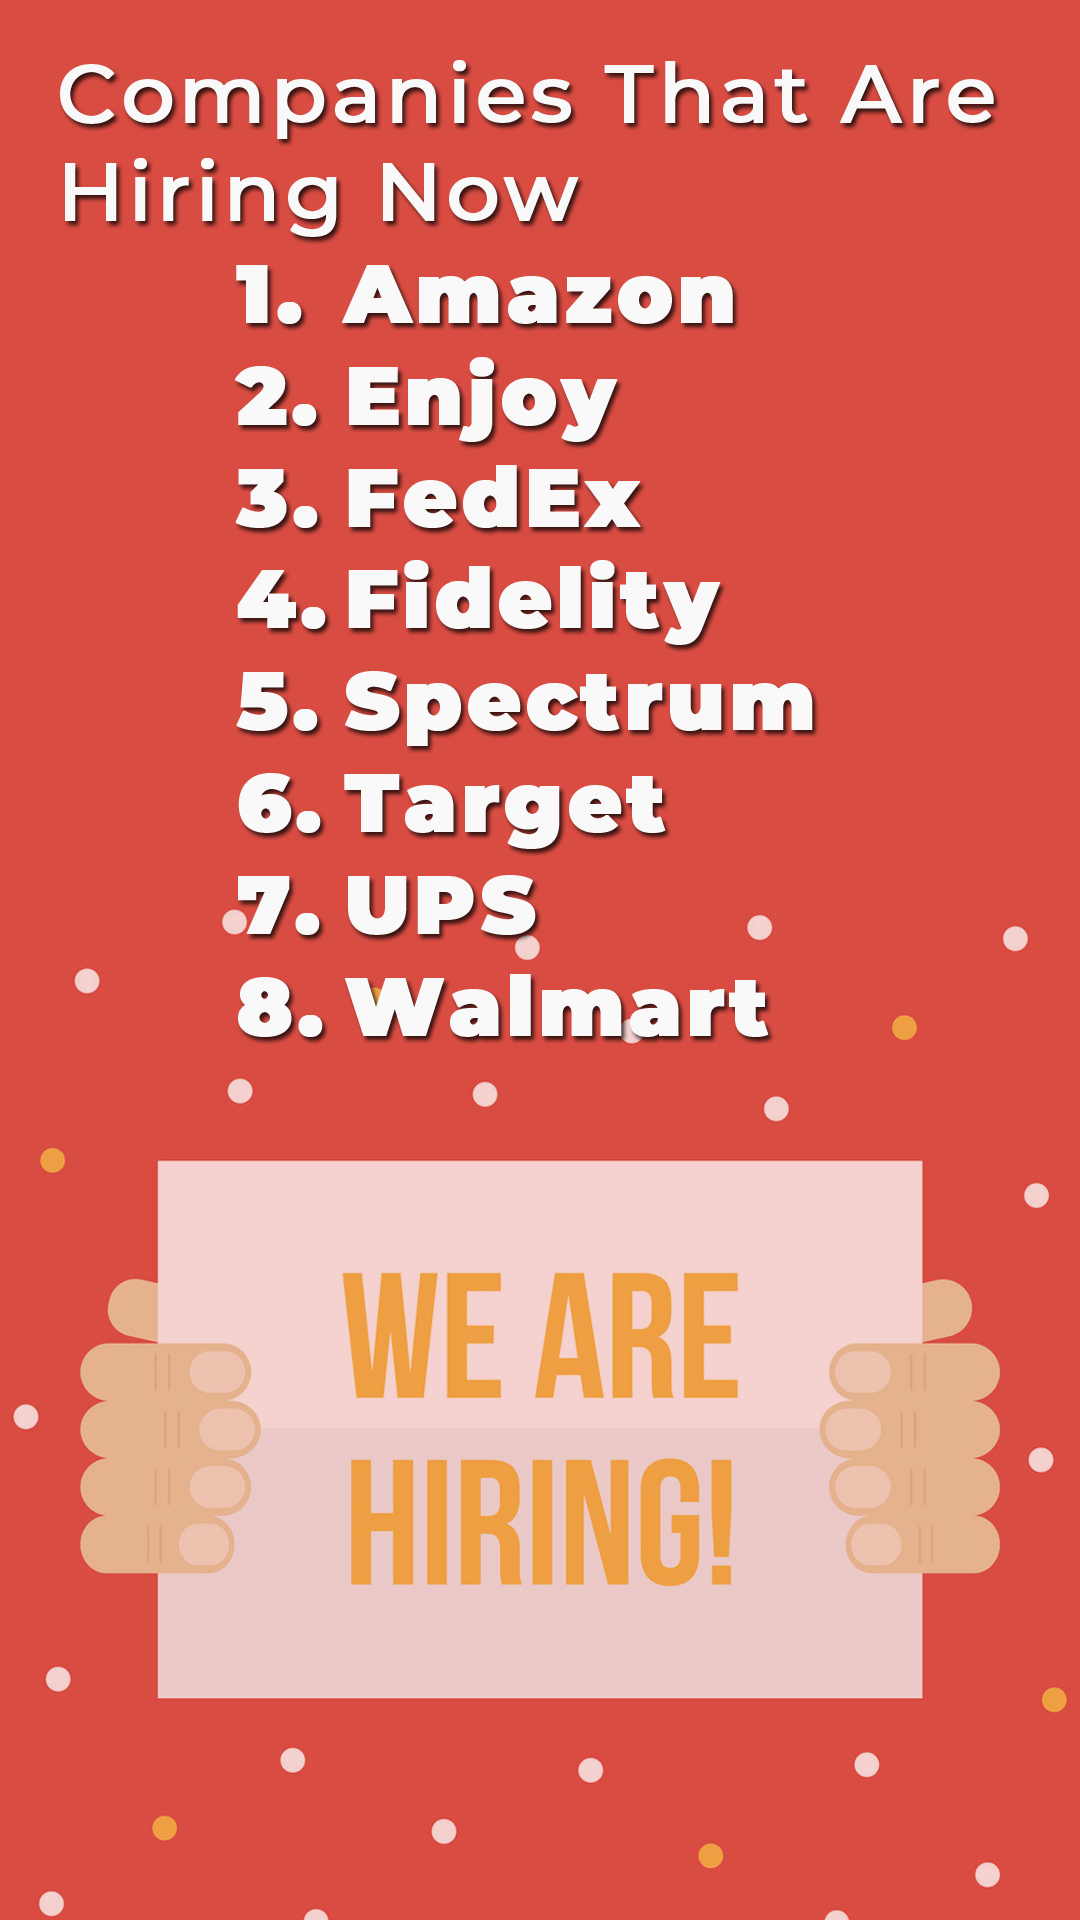 Companies That Are Hiring Now